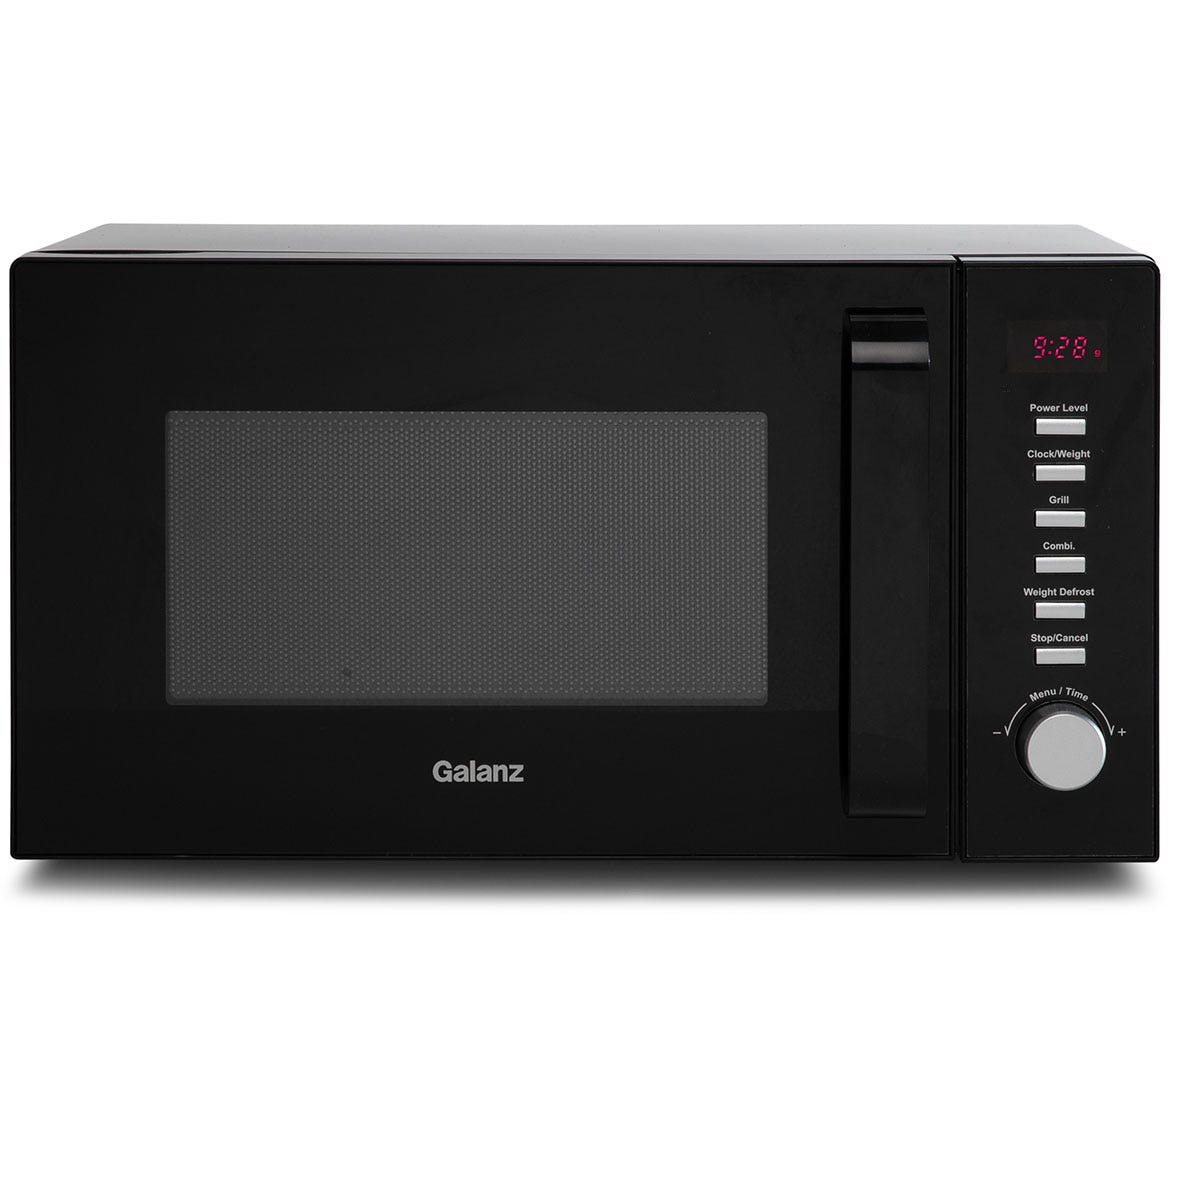 Galanz 20L 800W Digital Microwave with 900W Grill - Black